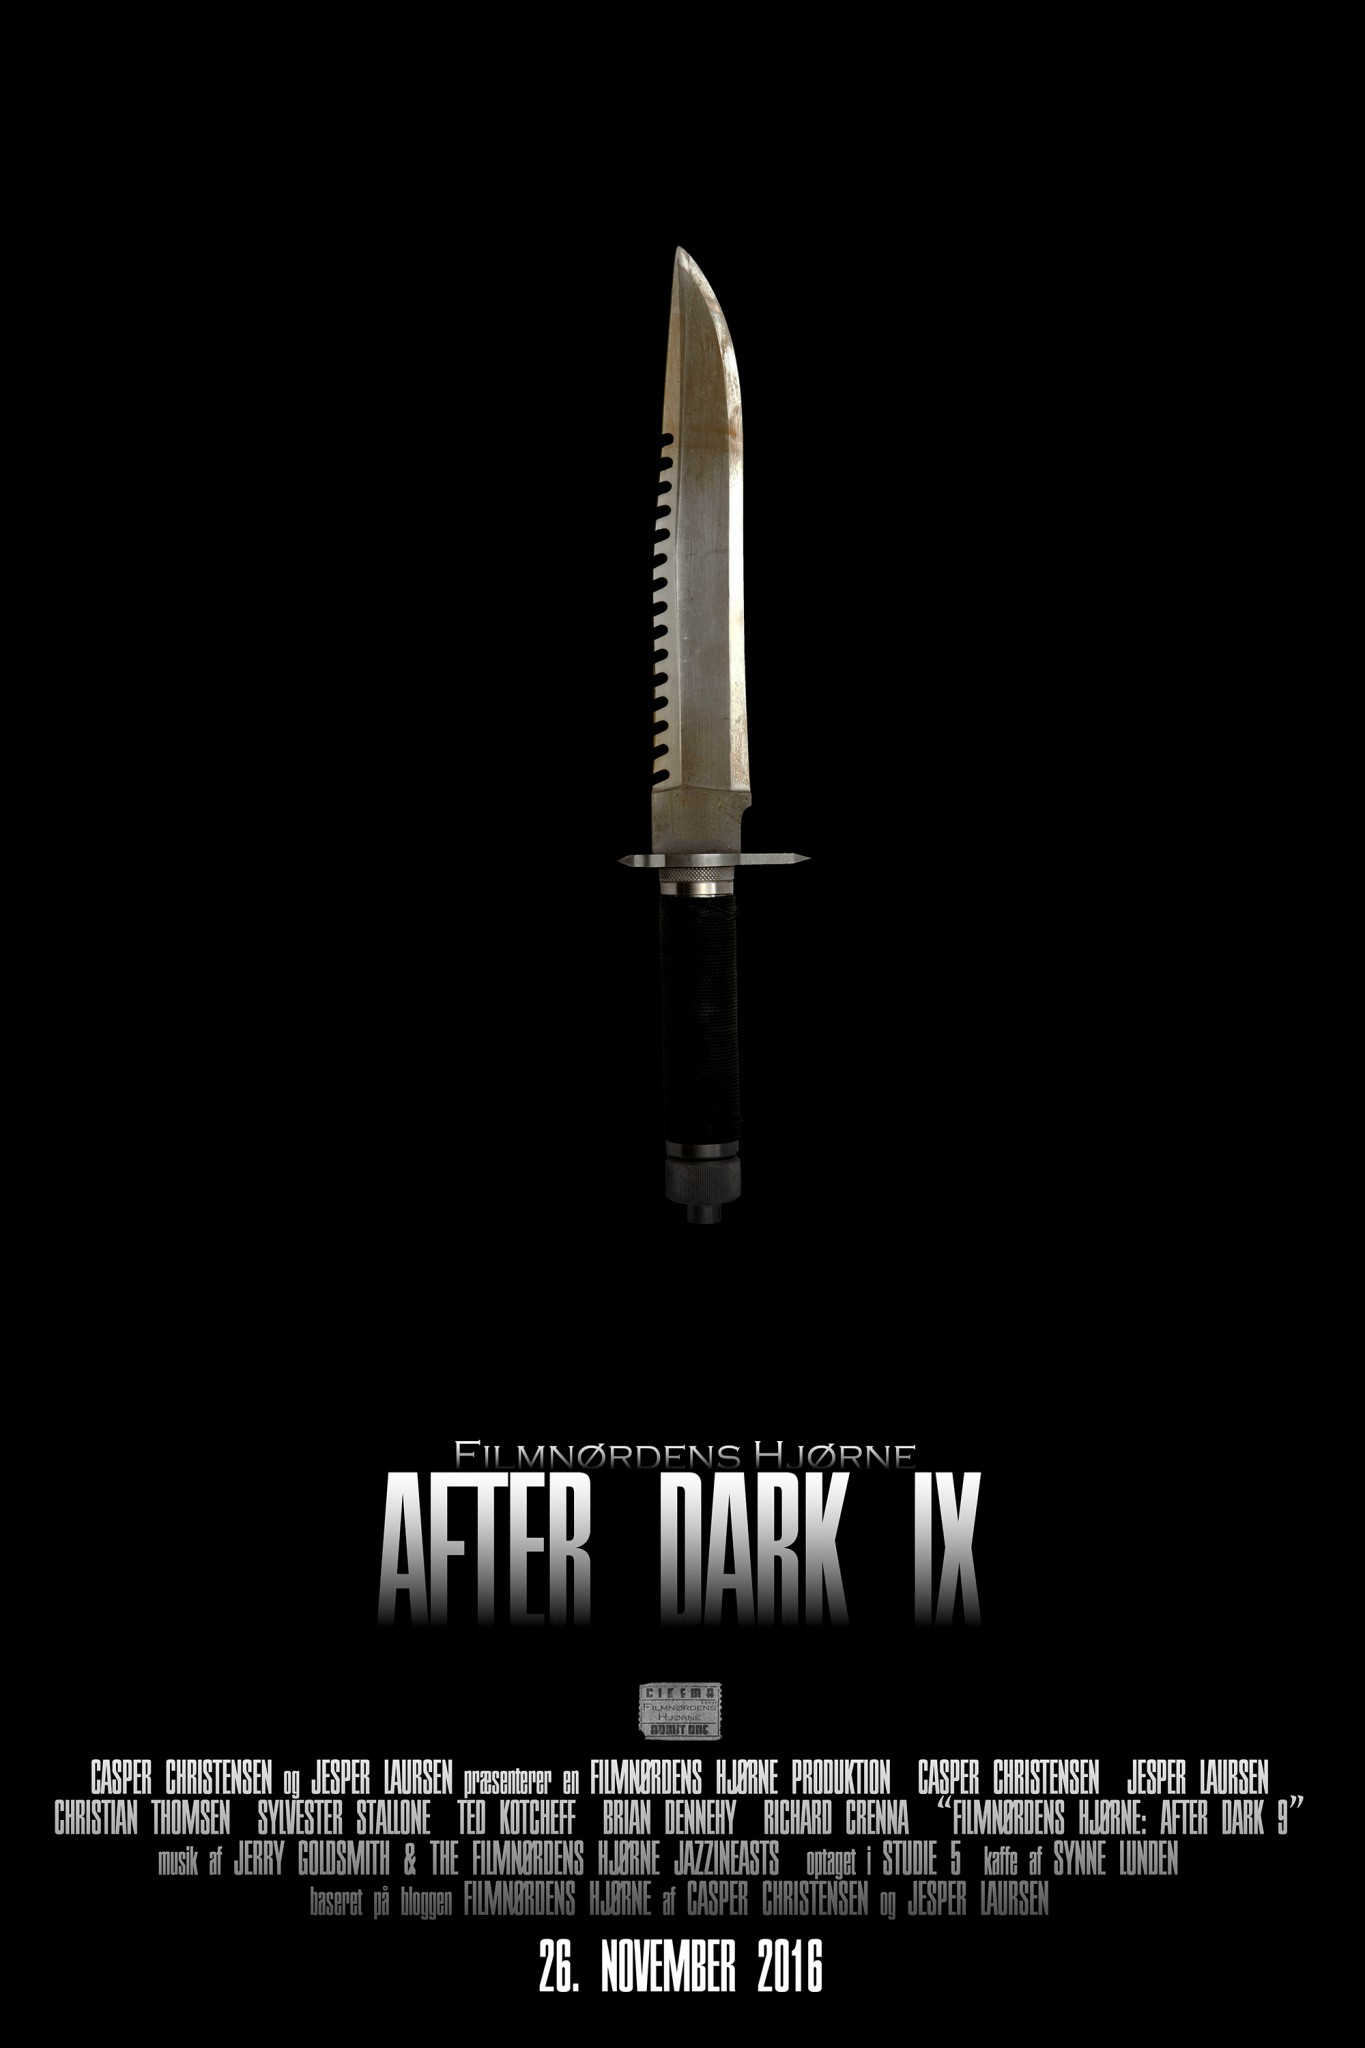 poster-for-after-dark-9-small